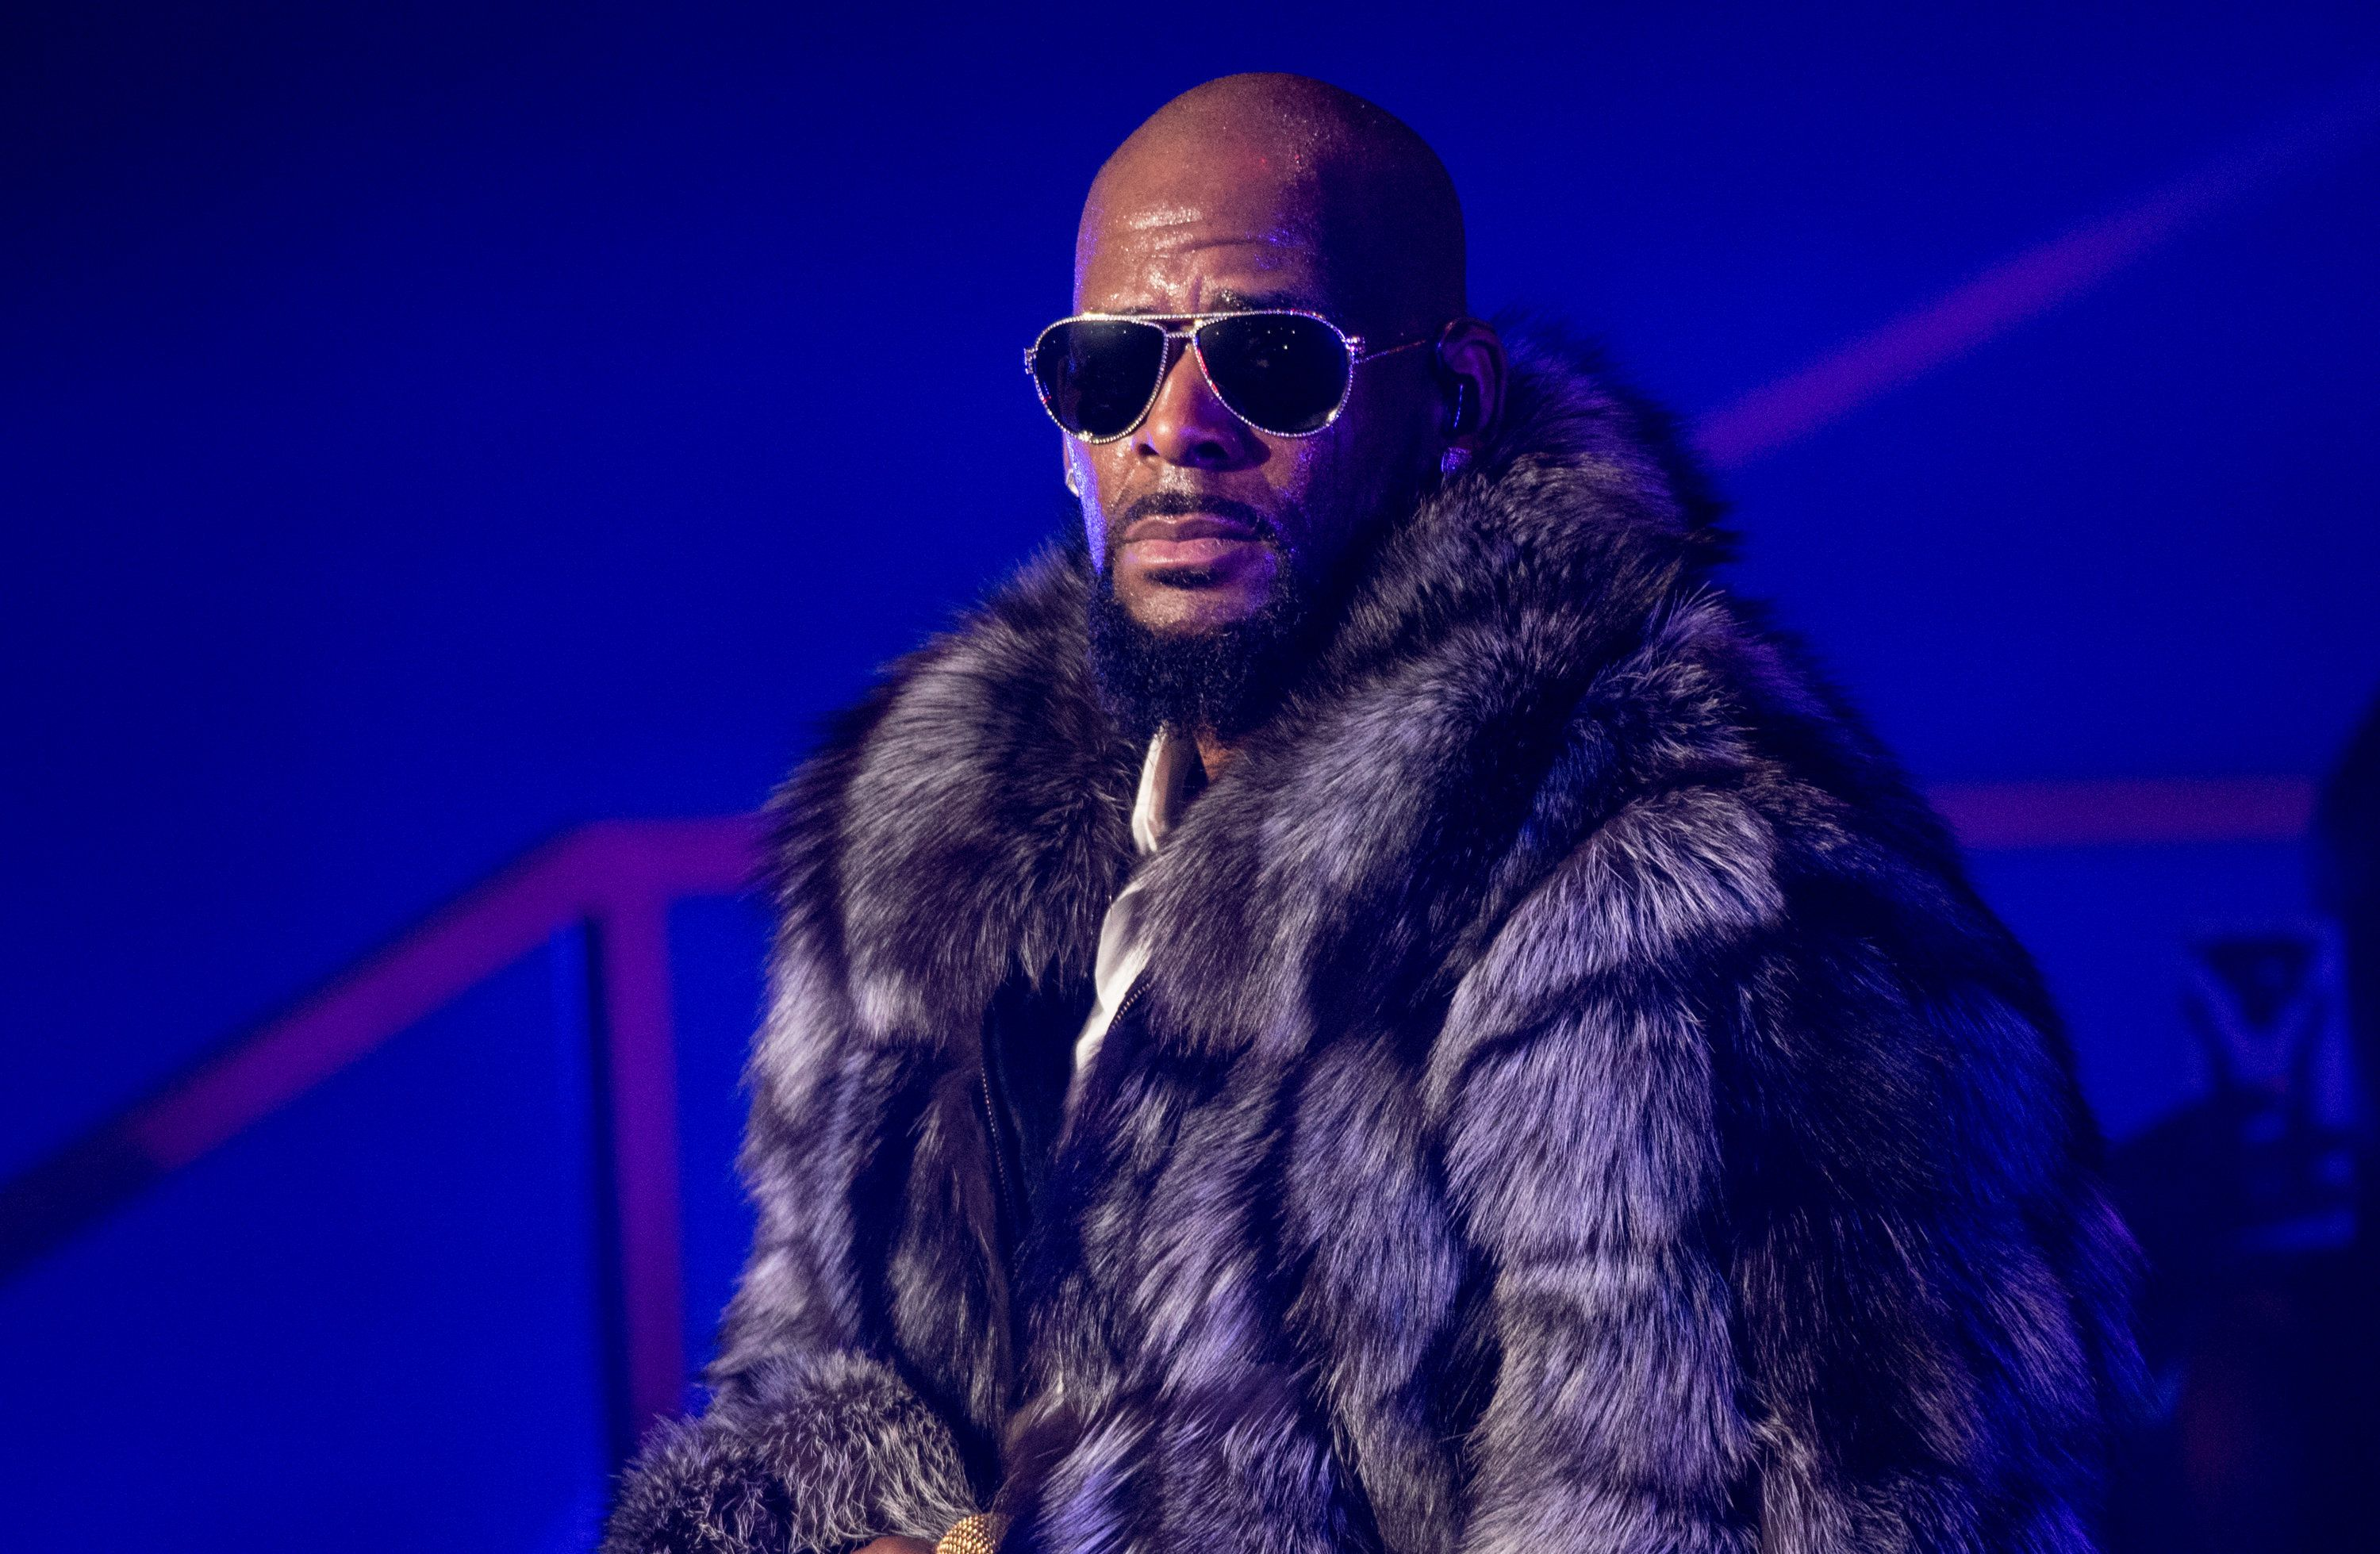 NEW YORK, NY - DECEMBER 17:  Singer R. Kelly performs in concert during the '12 Nights Of Christmas' tour at Kings Theatre on December 17, 2016 in the Brooklyn borough New York City.  (Photo by Noam Galai/Getty Images)